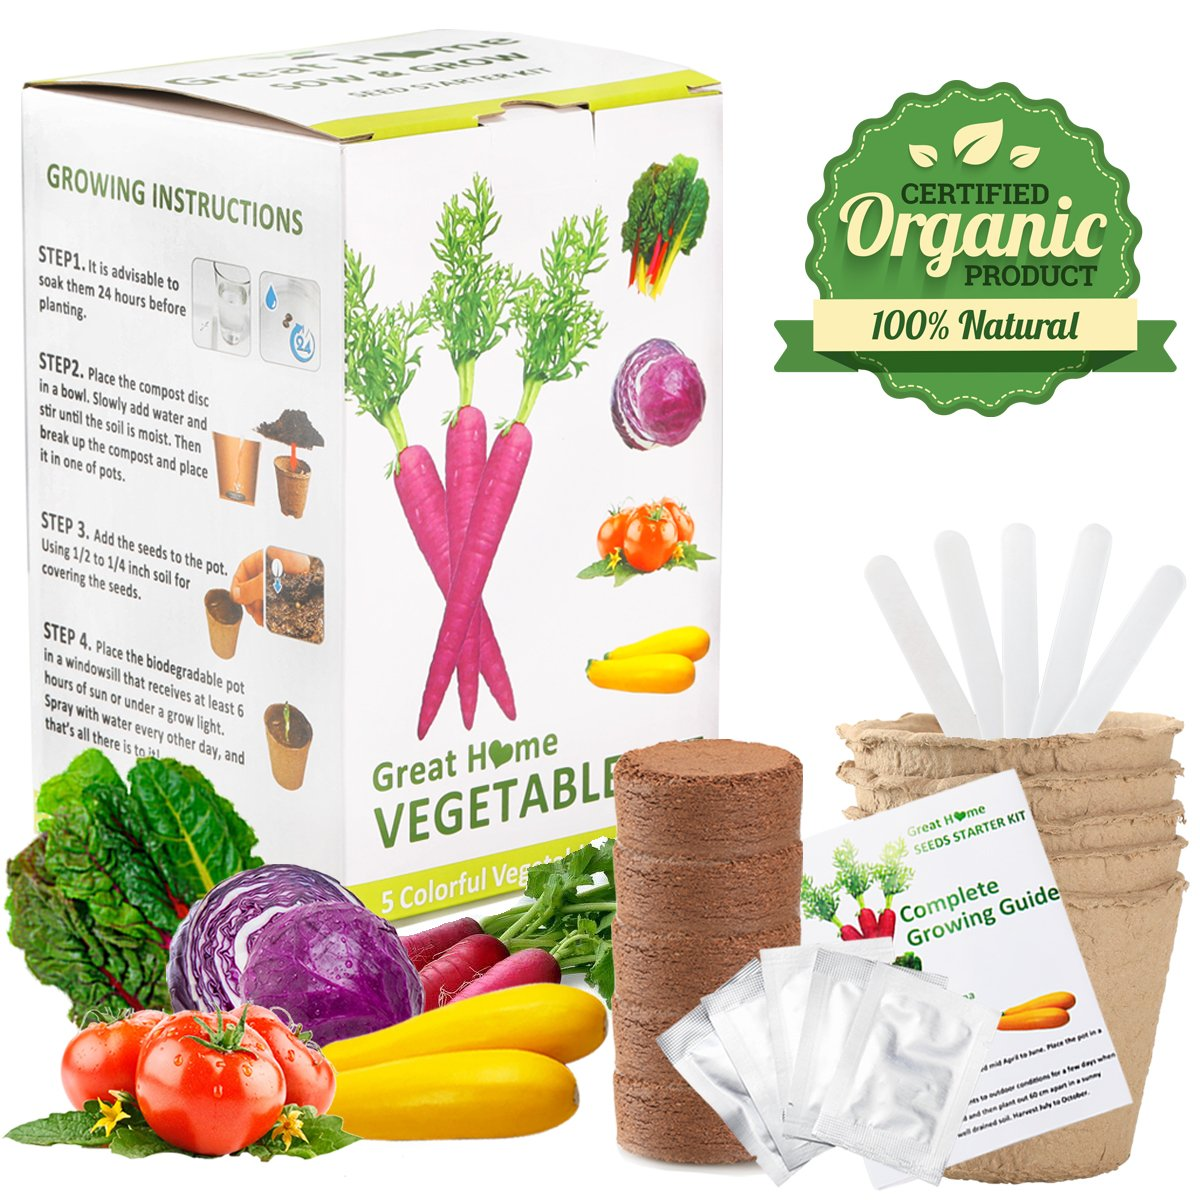 Vegetable Herb Garden Seed Growing Starter Kit Indoor For Kids Easily Grow 5 Fresh Veggie Garden Kit Tomatoes,Purple Carrot,Rainbow Chard,Brussel Sprout Paired with Magic Trio Peeler Set(Not Included)